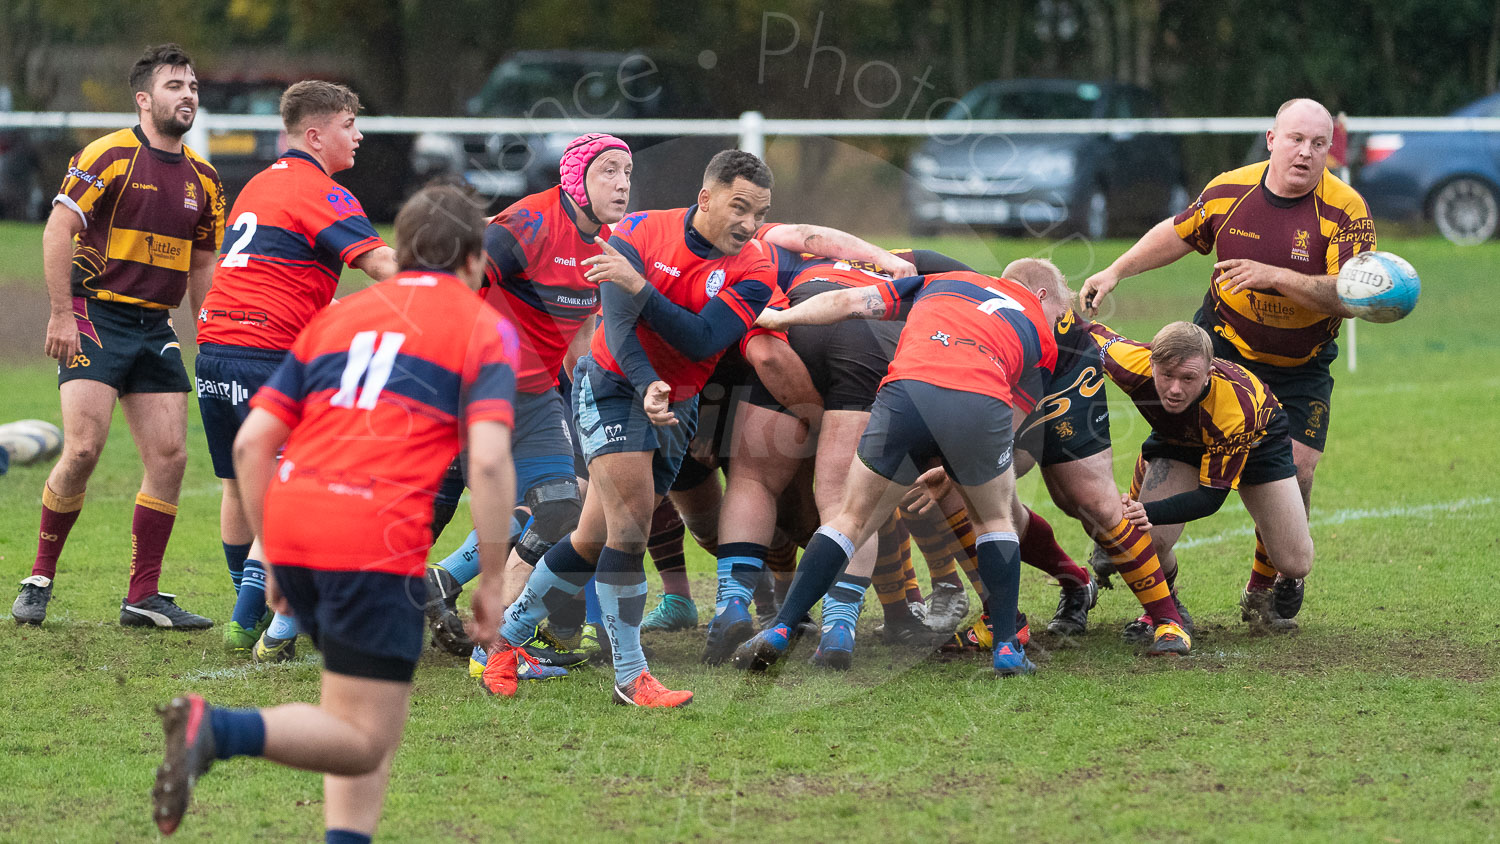 20181027 Amp Extras vs St Neots 2nd XV #2617